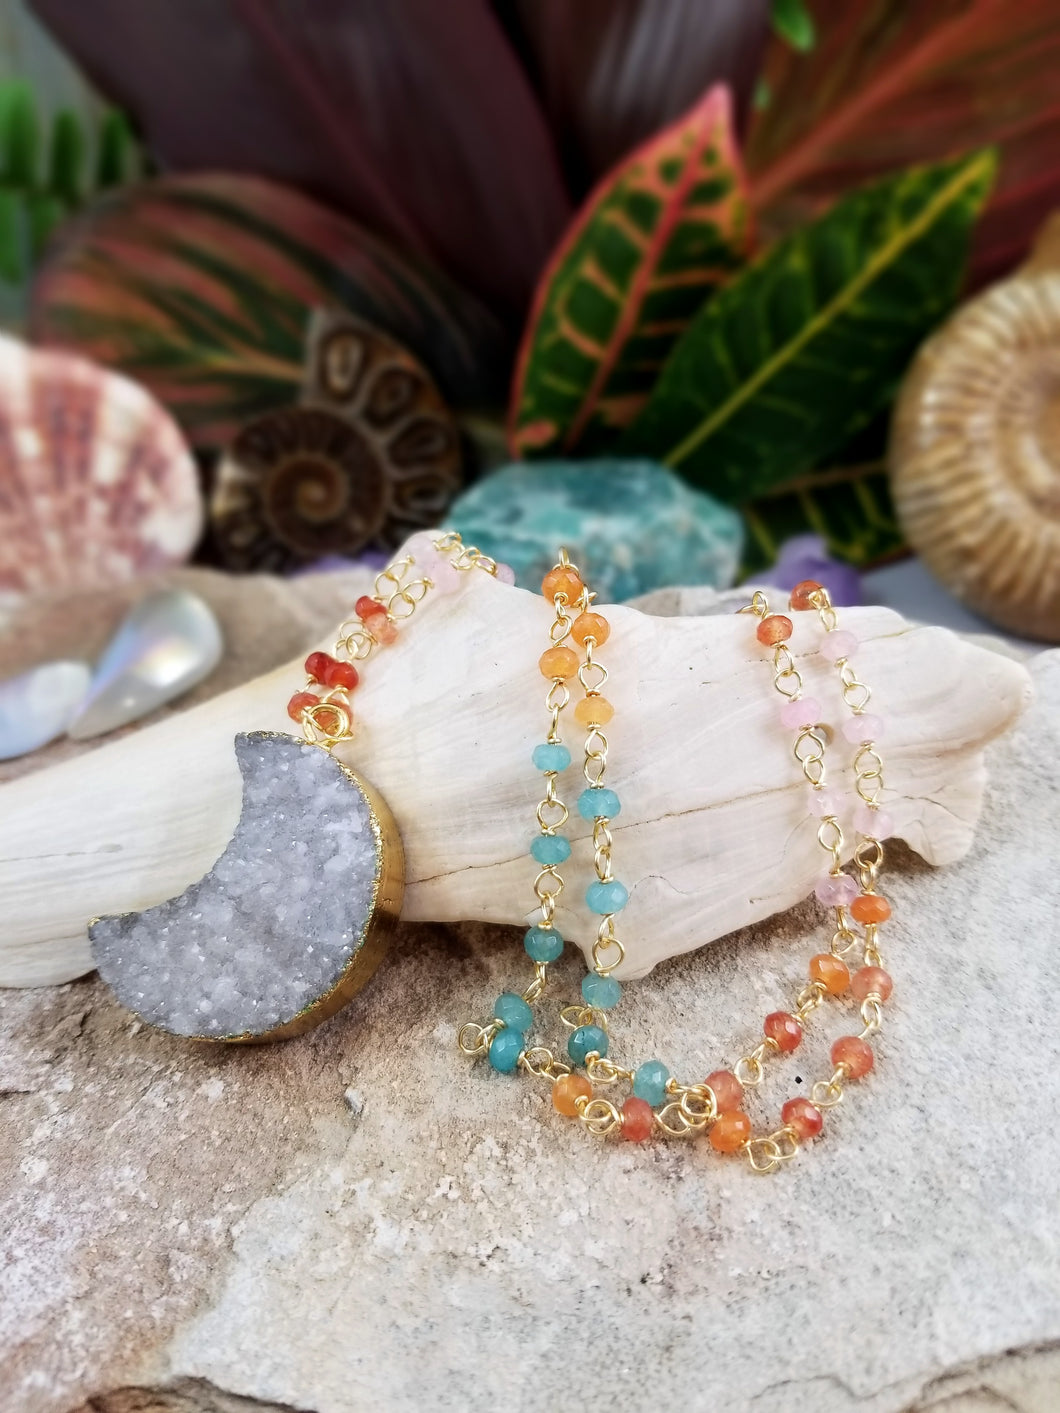 Druzy Agate Crescent Moon Necklace